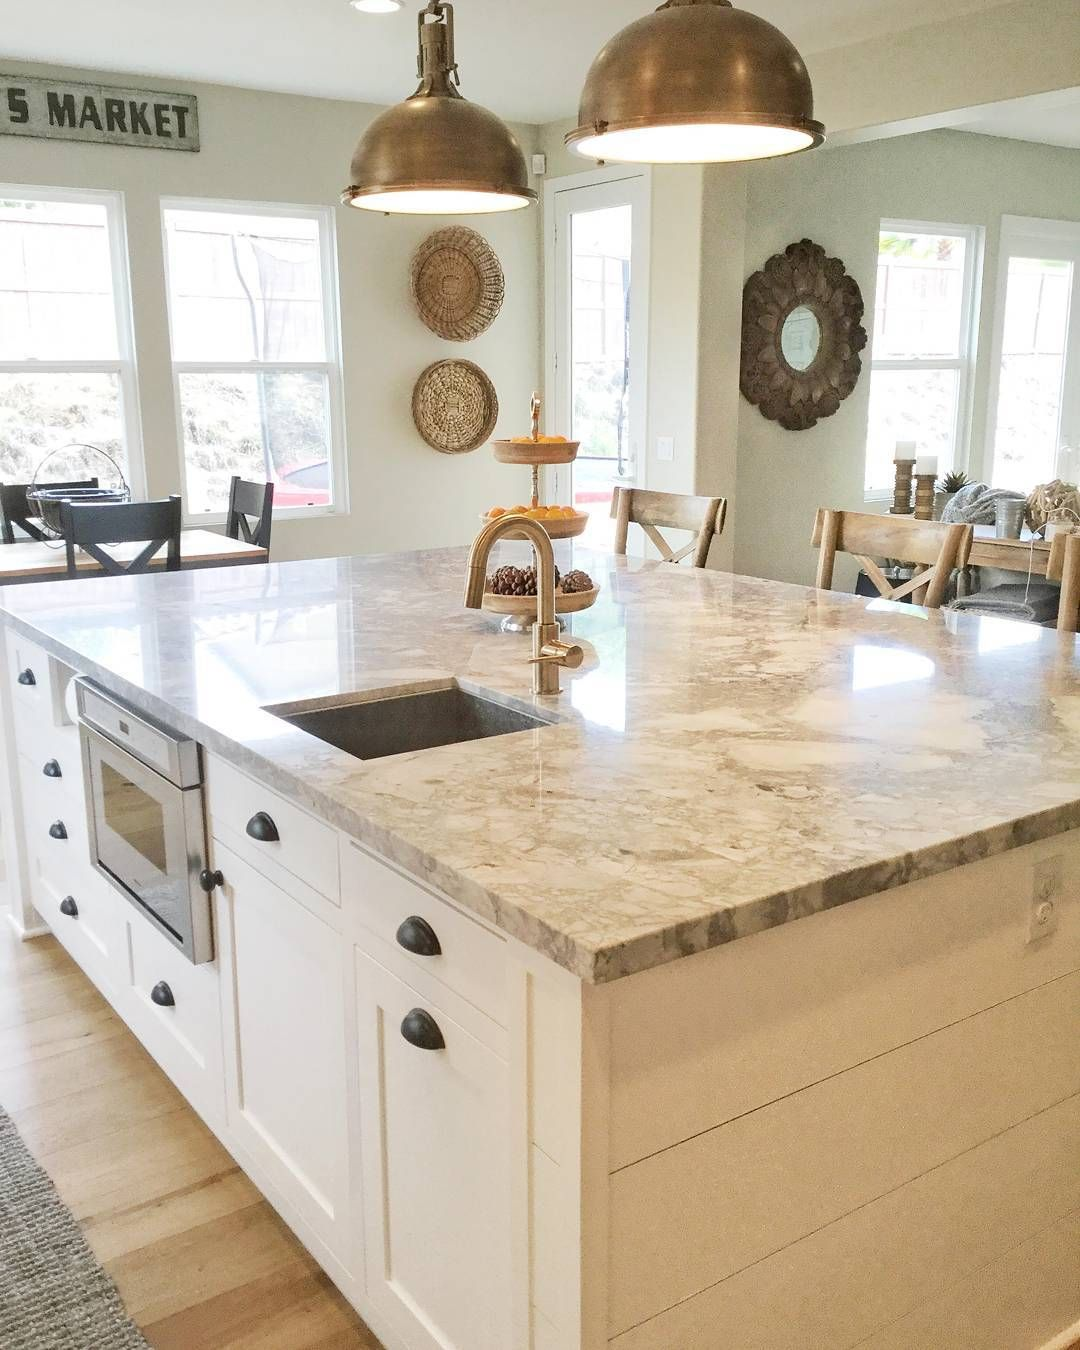 Cottage Kitchen Countertops: Pin By Little Yellow Cottage On ***Cozy Cottage Kitchens